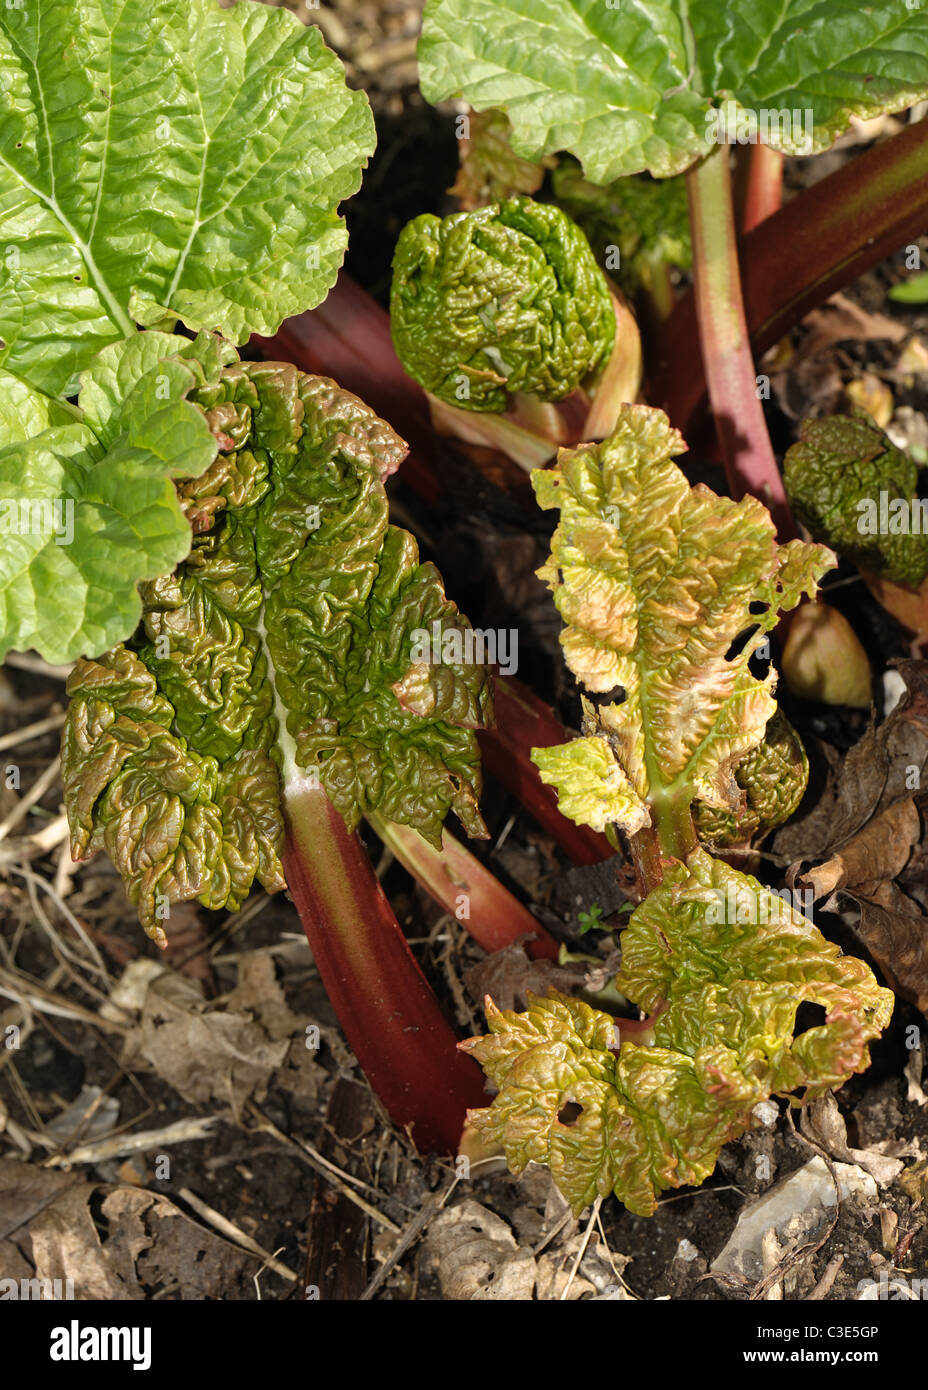 First leaves of a rhubarb plant in early spring - Stock Image